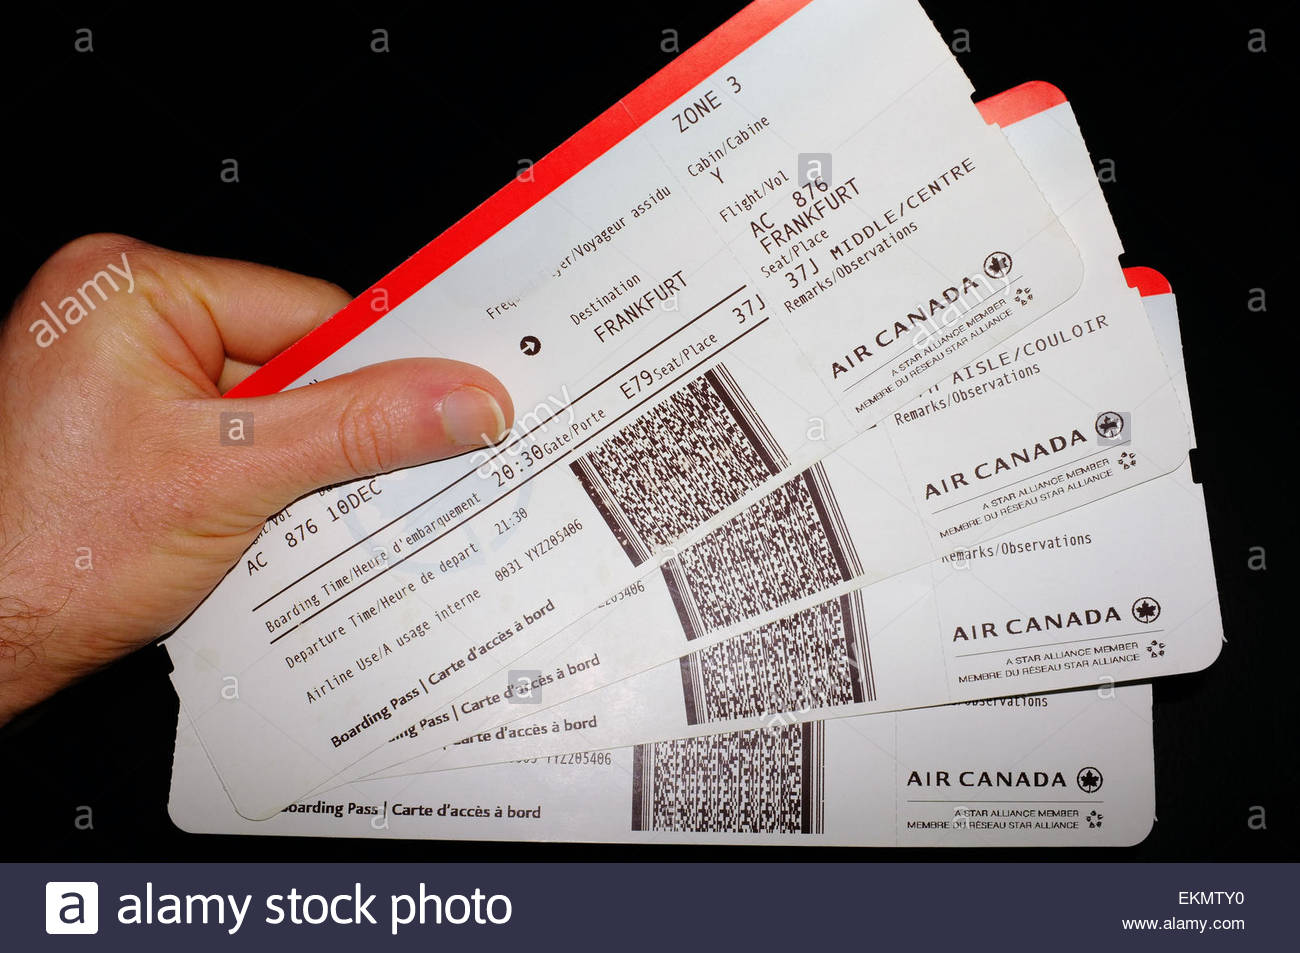 Emirates flight search helps you find best priced flight tickets for your next trip. Choose Emirates airlines to enjoy our world-class service on all flights. - Emirates Canada.